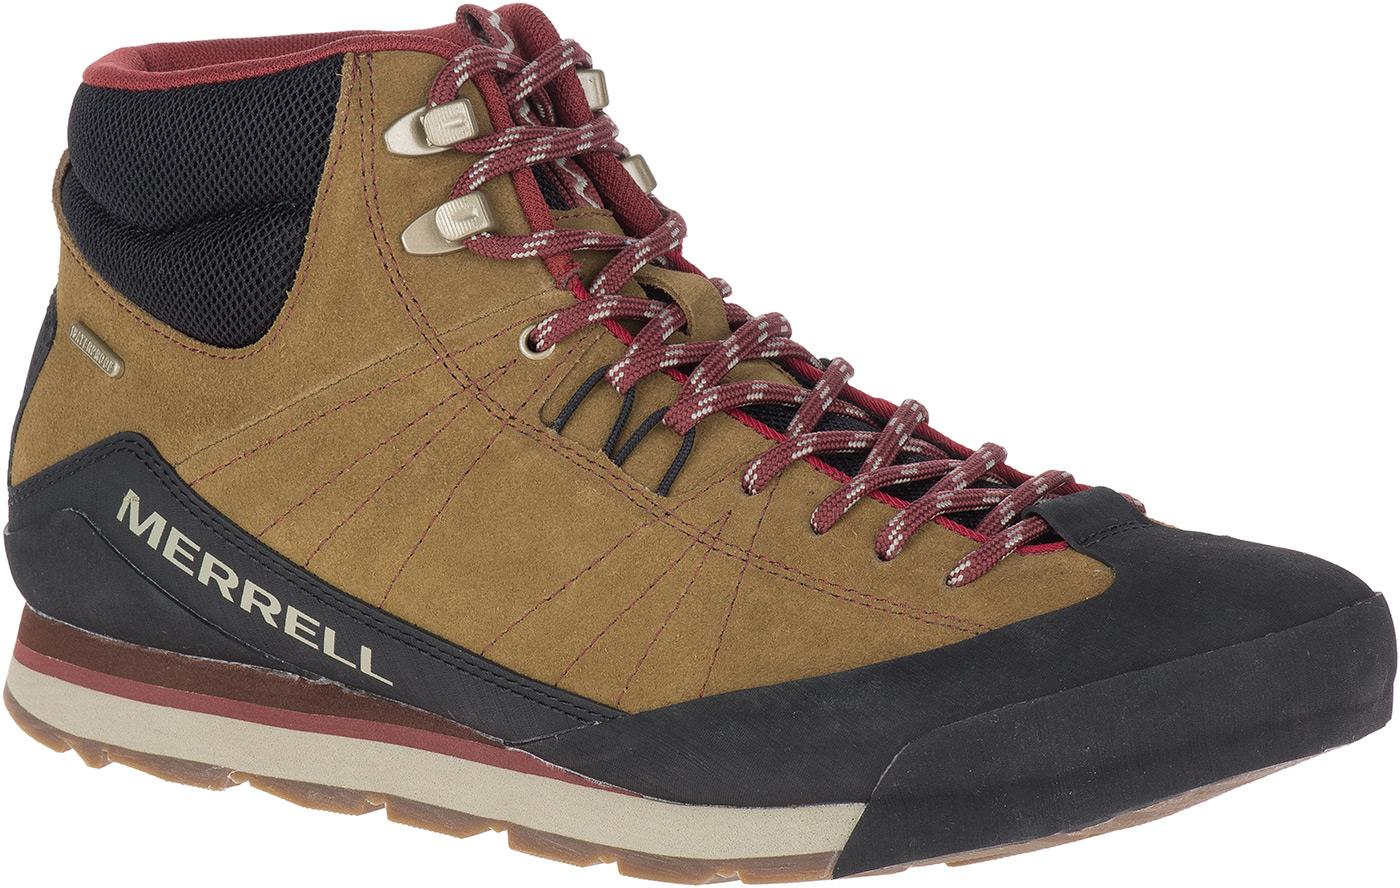 Merrel CATALYST MID SUEDE WP Erkek Bot J000973